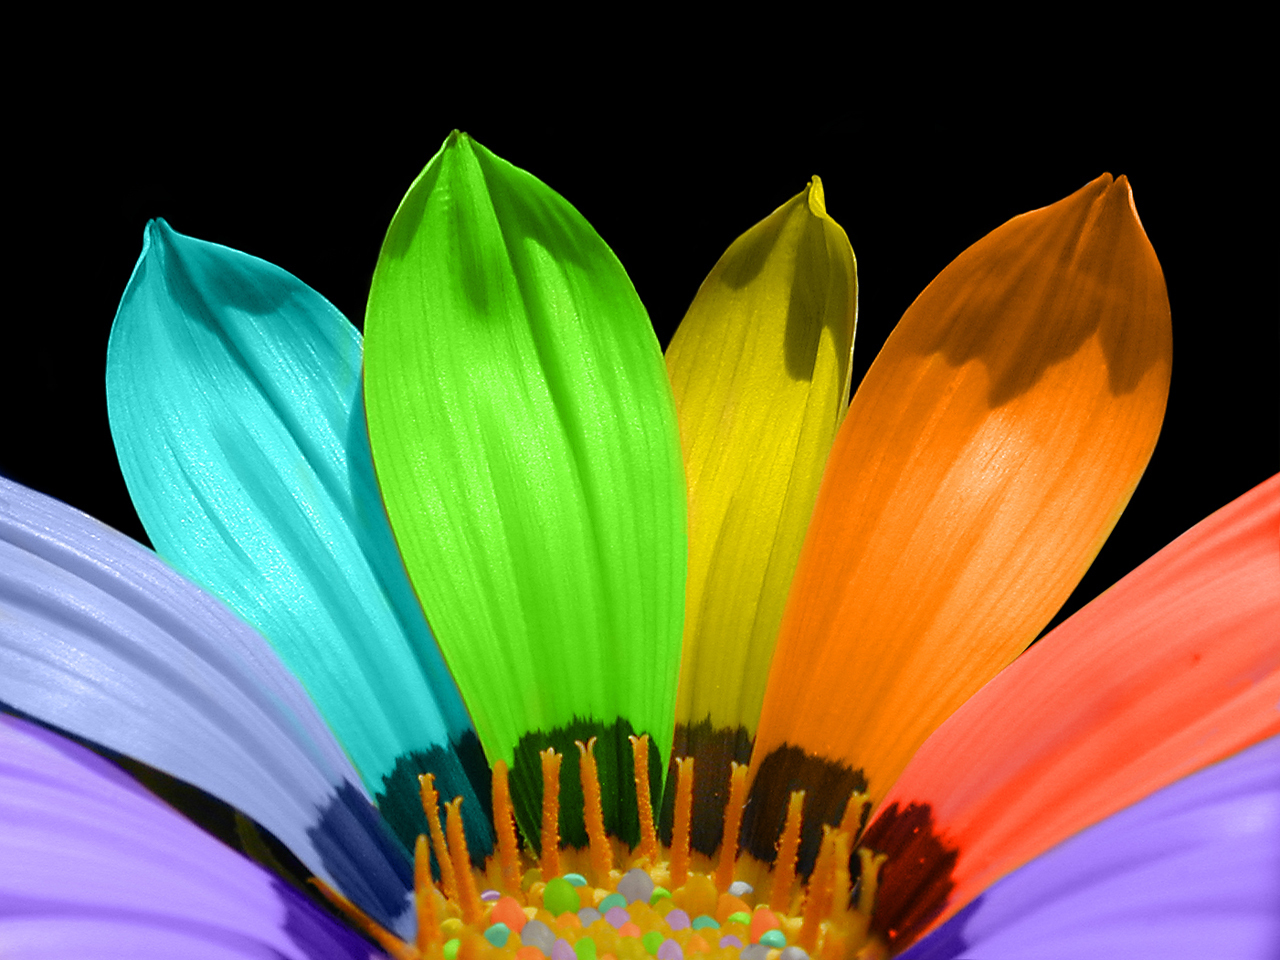 Why are flowers brightly colored?